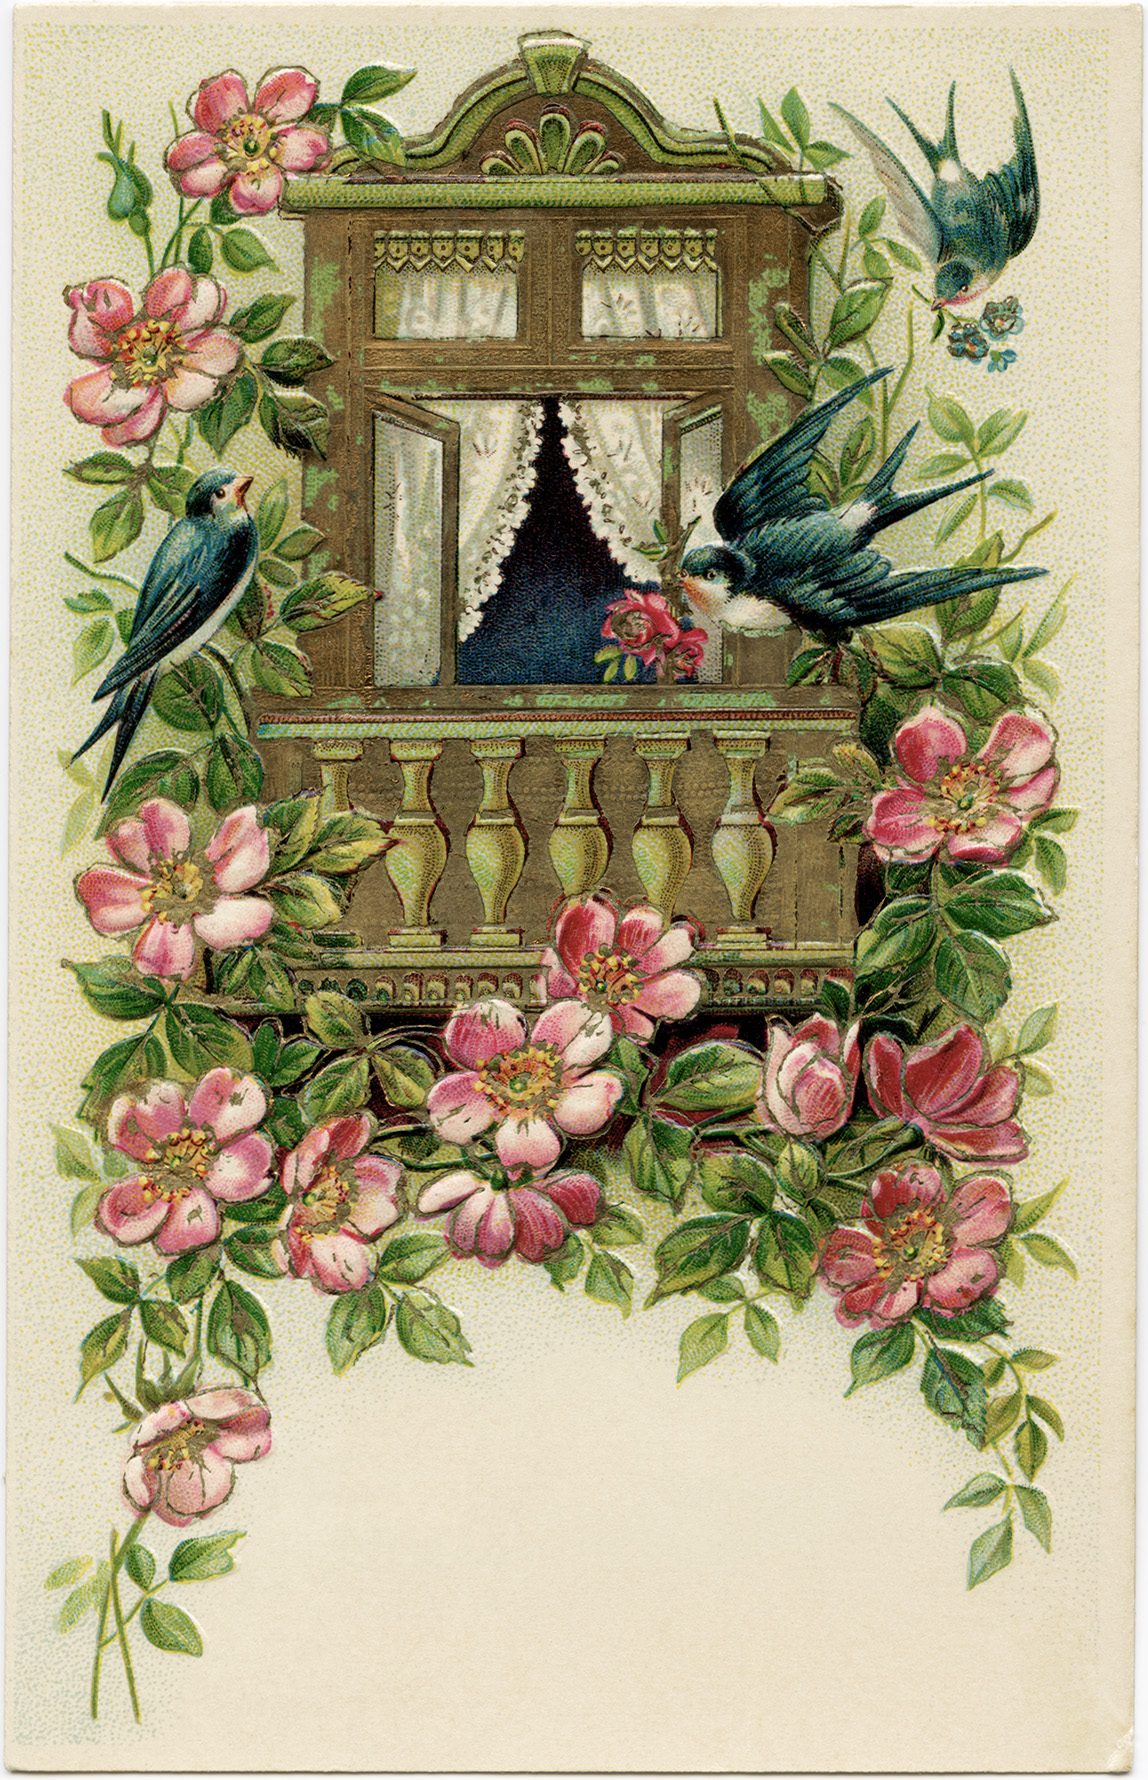 Birds And Flowers Postcard Free Vintage Image Old